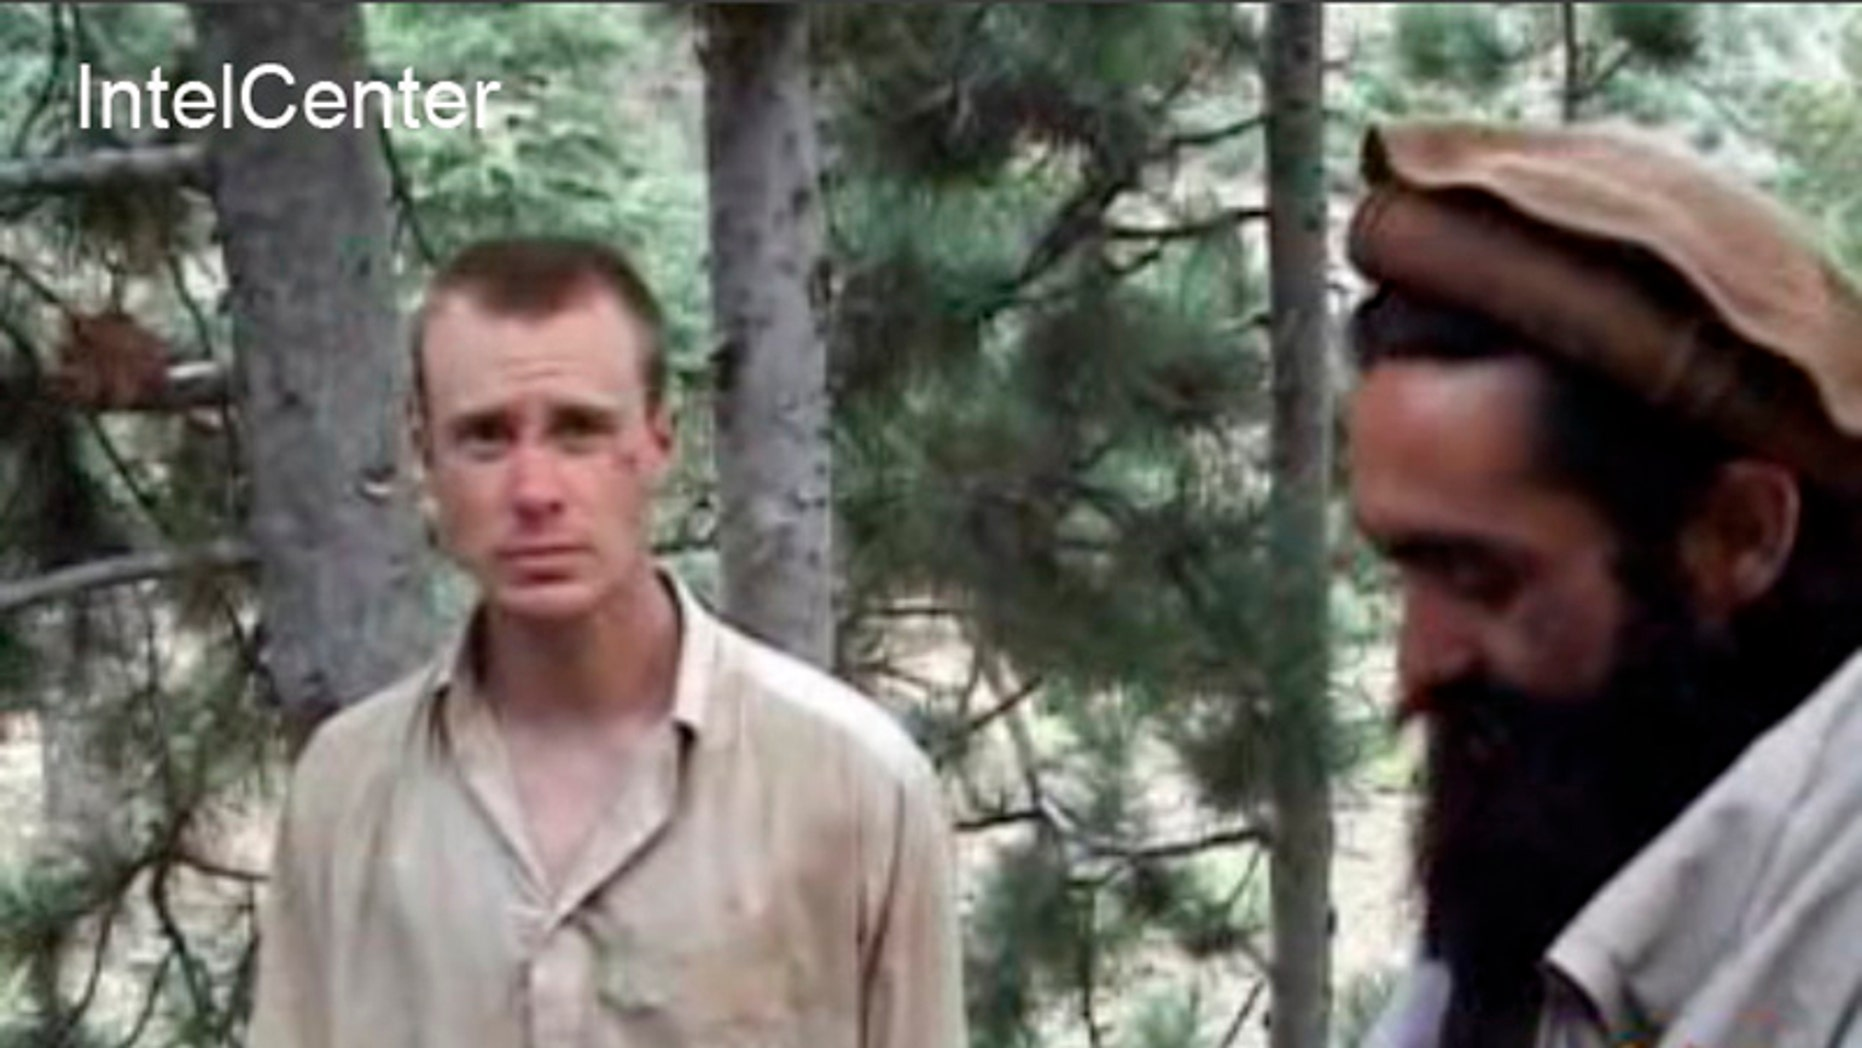 Dec. 8, 2010: This file image provided by IntelCenter shows a framegrab from a video released by the Taliban containing footage of a man believed to be Sgt. Bowe Bergdahl, left. (AP/Intel Center)